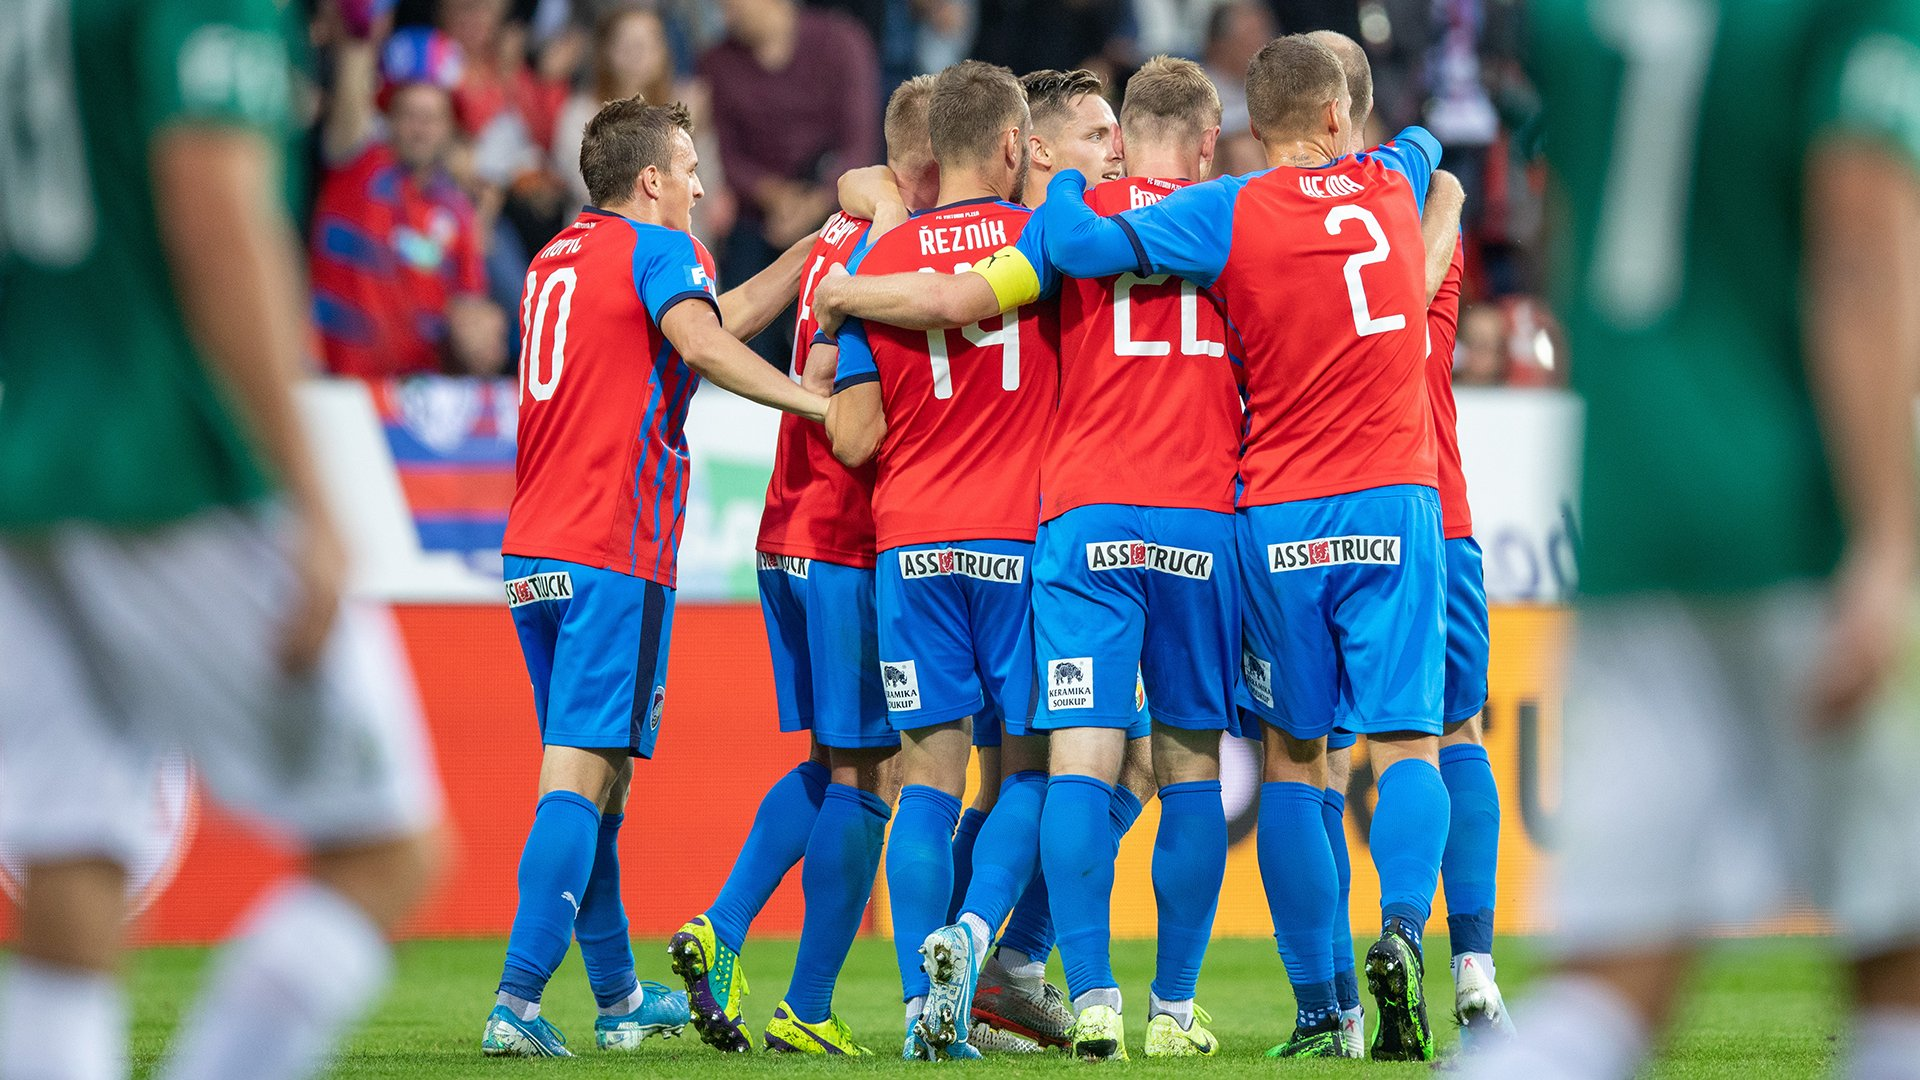 Kopic's long shot decided Viktoria's win over Jablonec